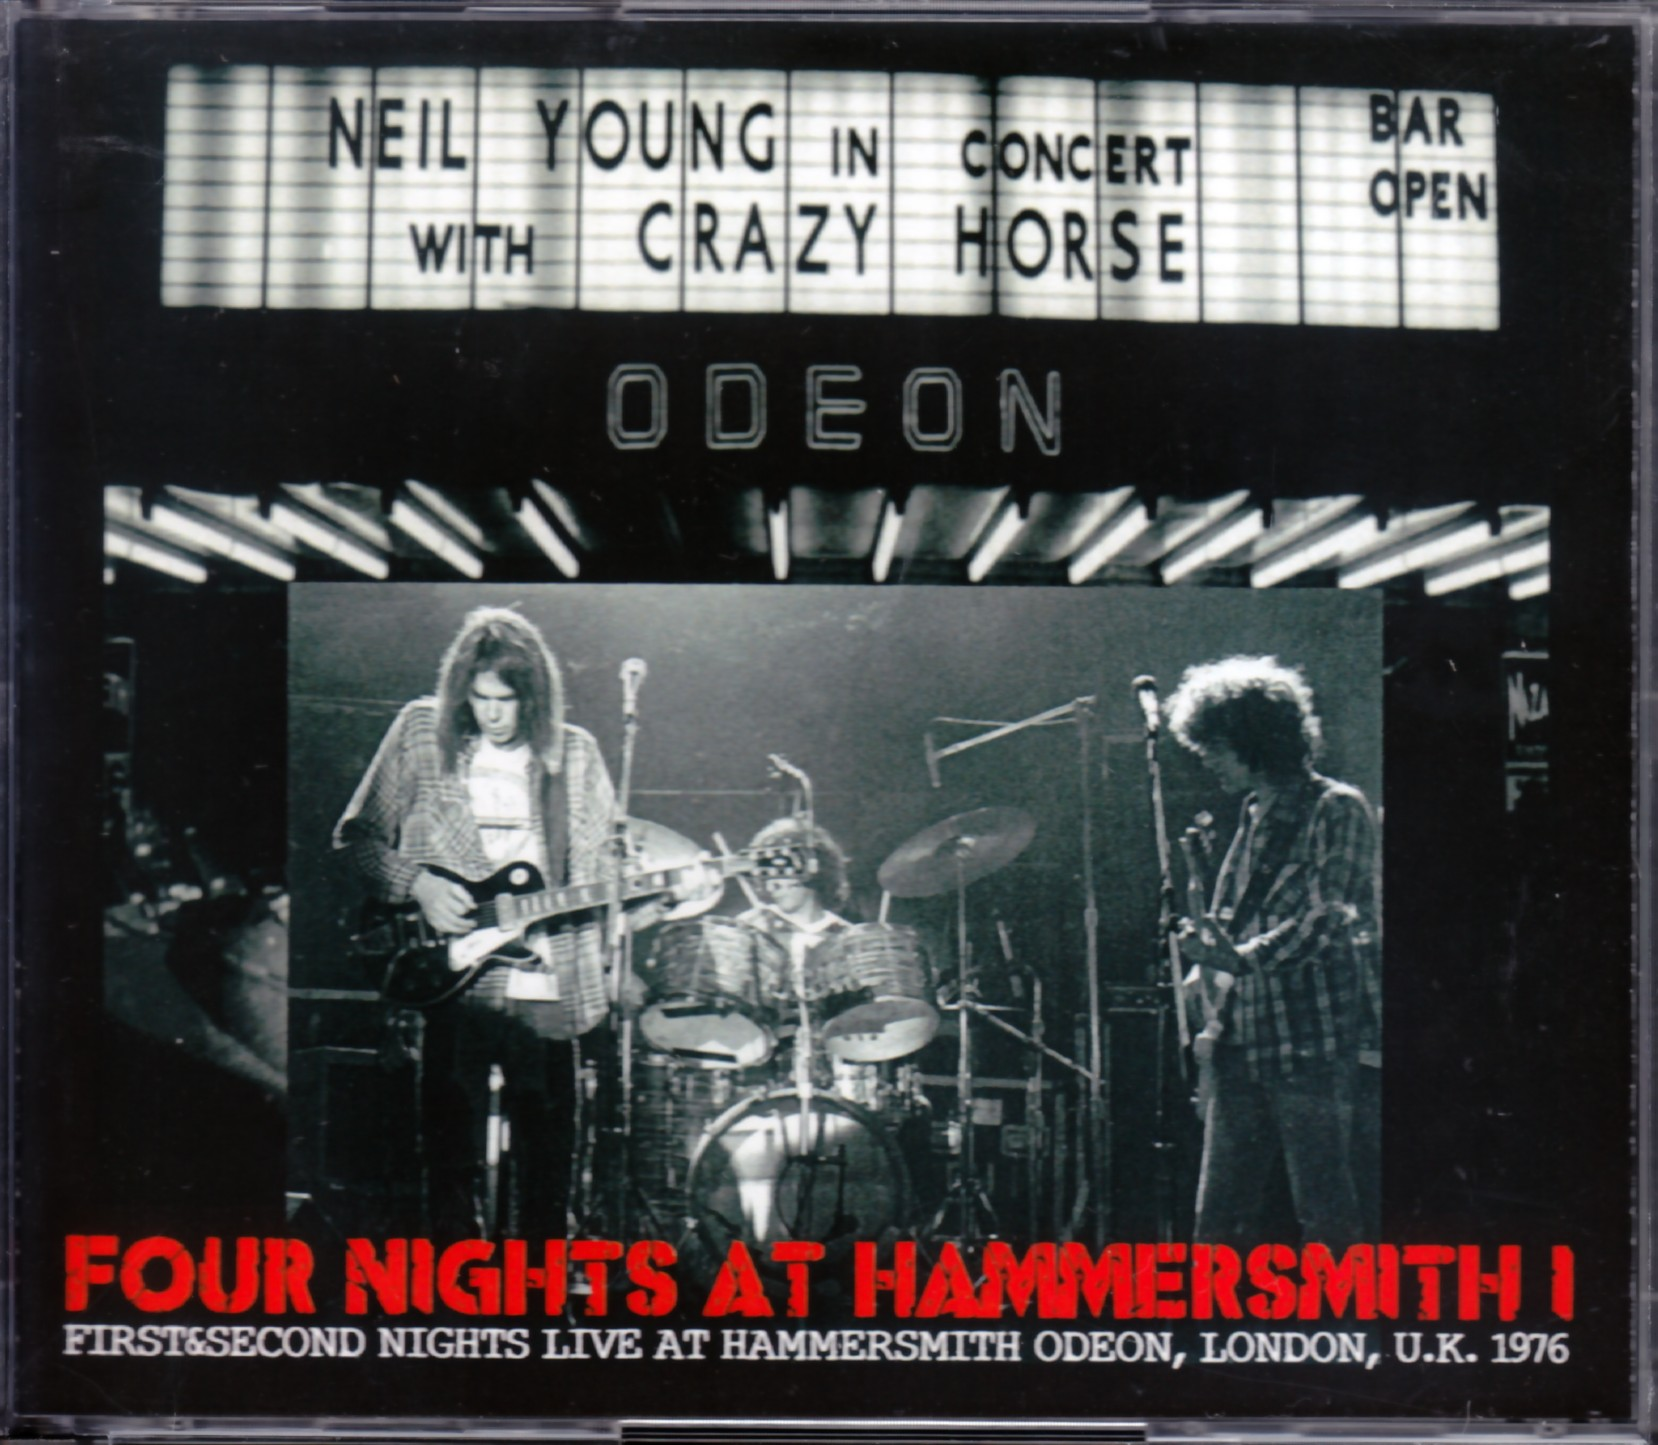 Neil Young ニール・ヤング/London,England 3.28・29.1976